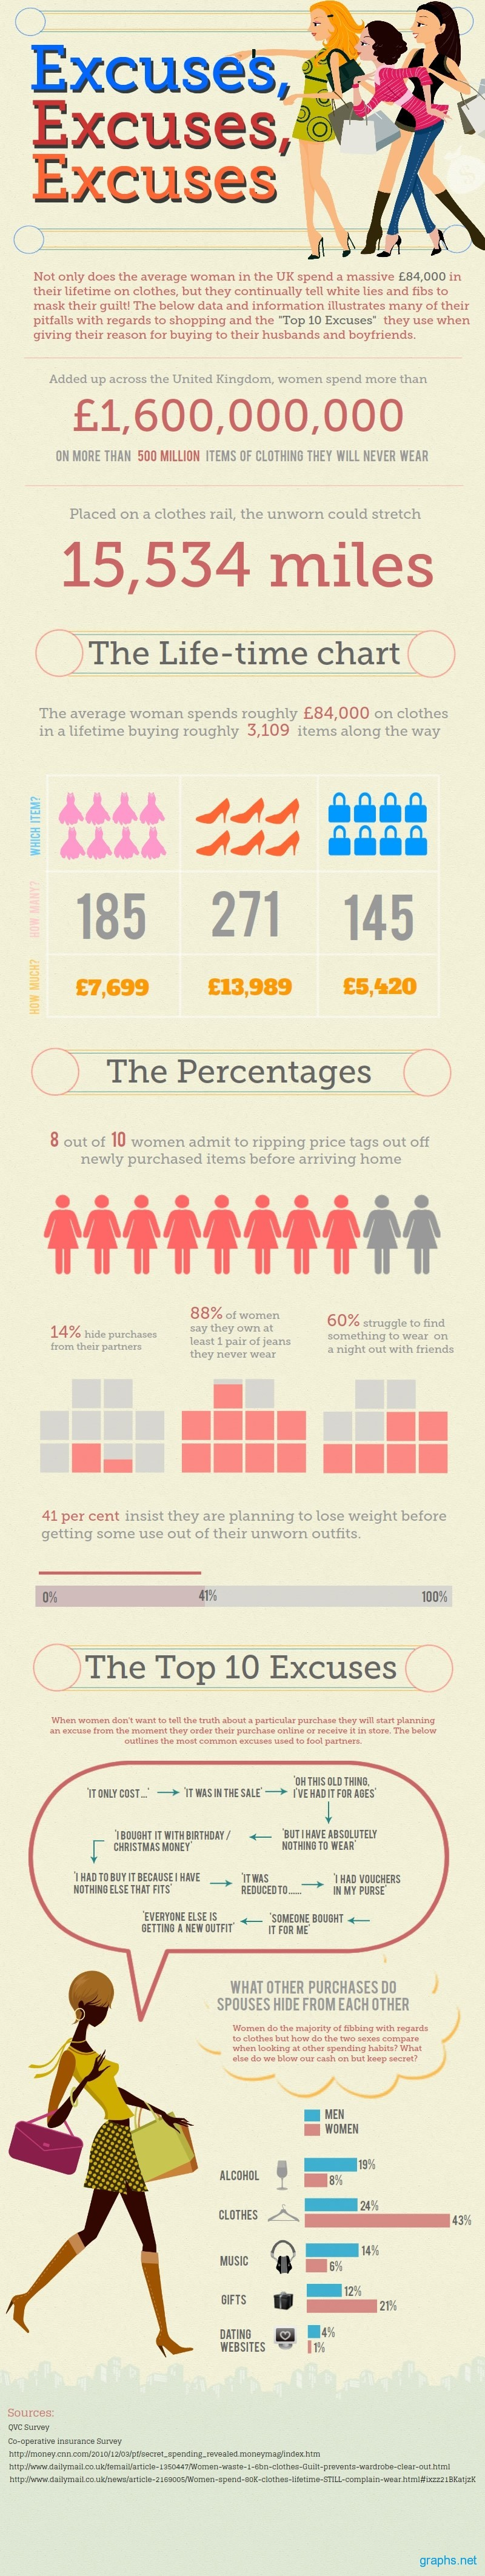 Top Excuses Women Use to Hide Purchases